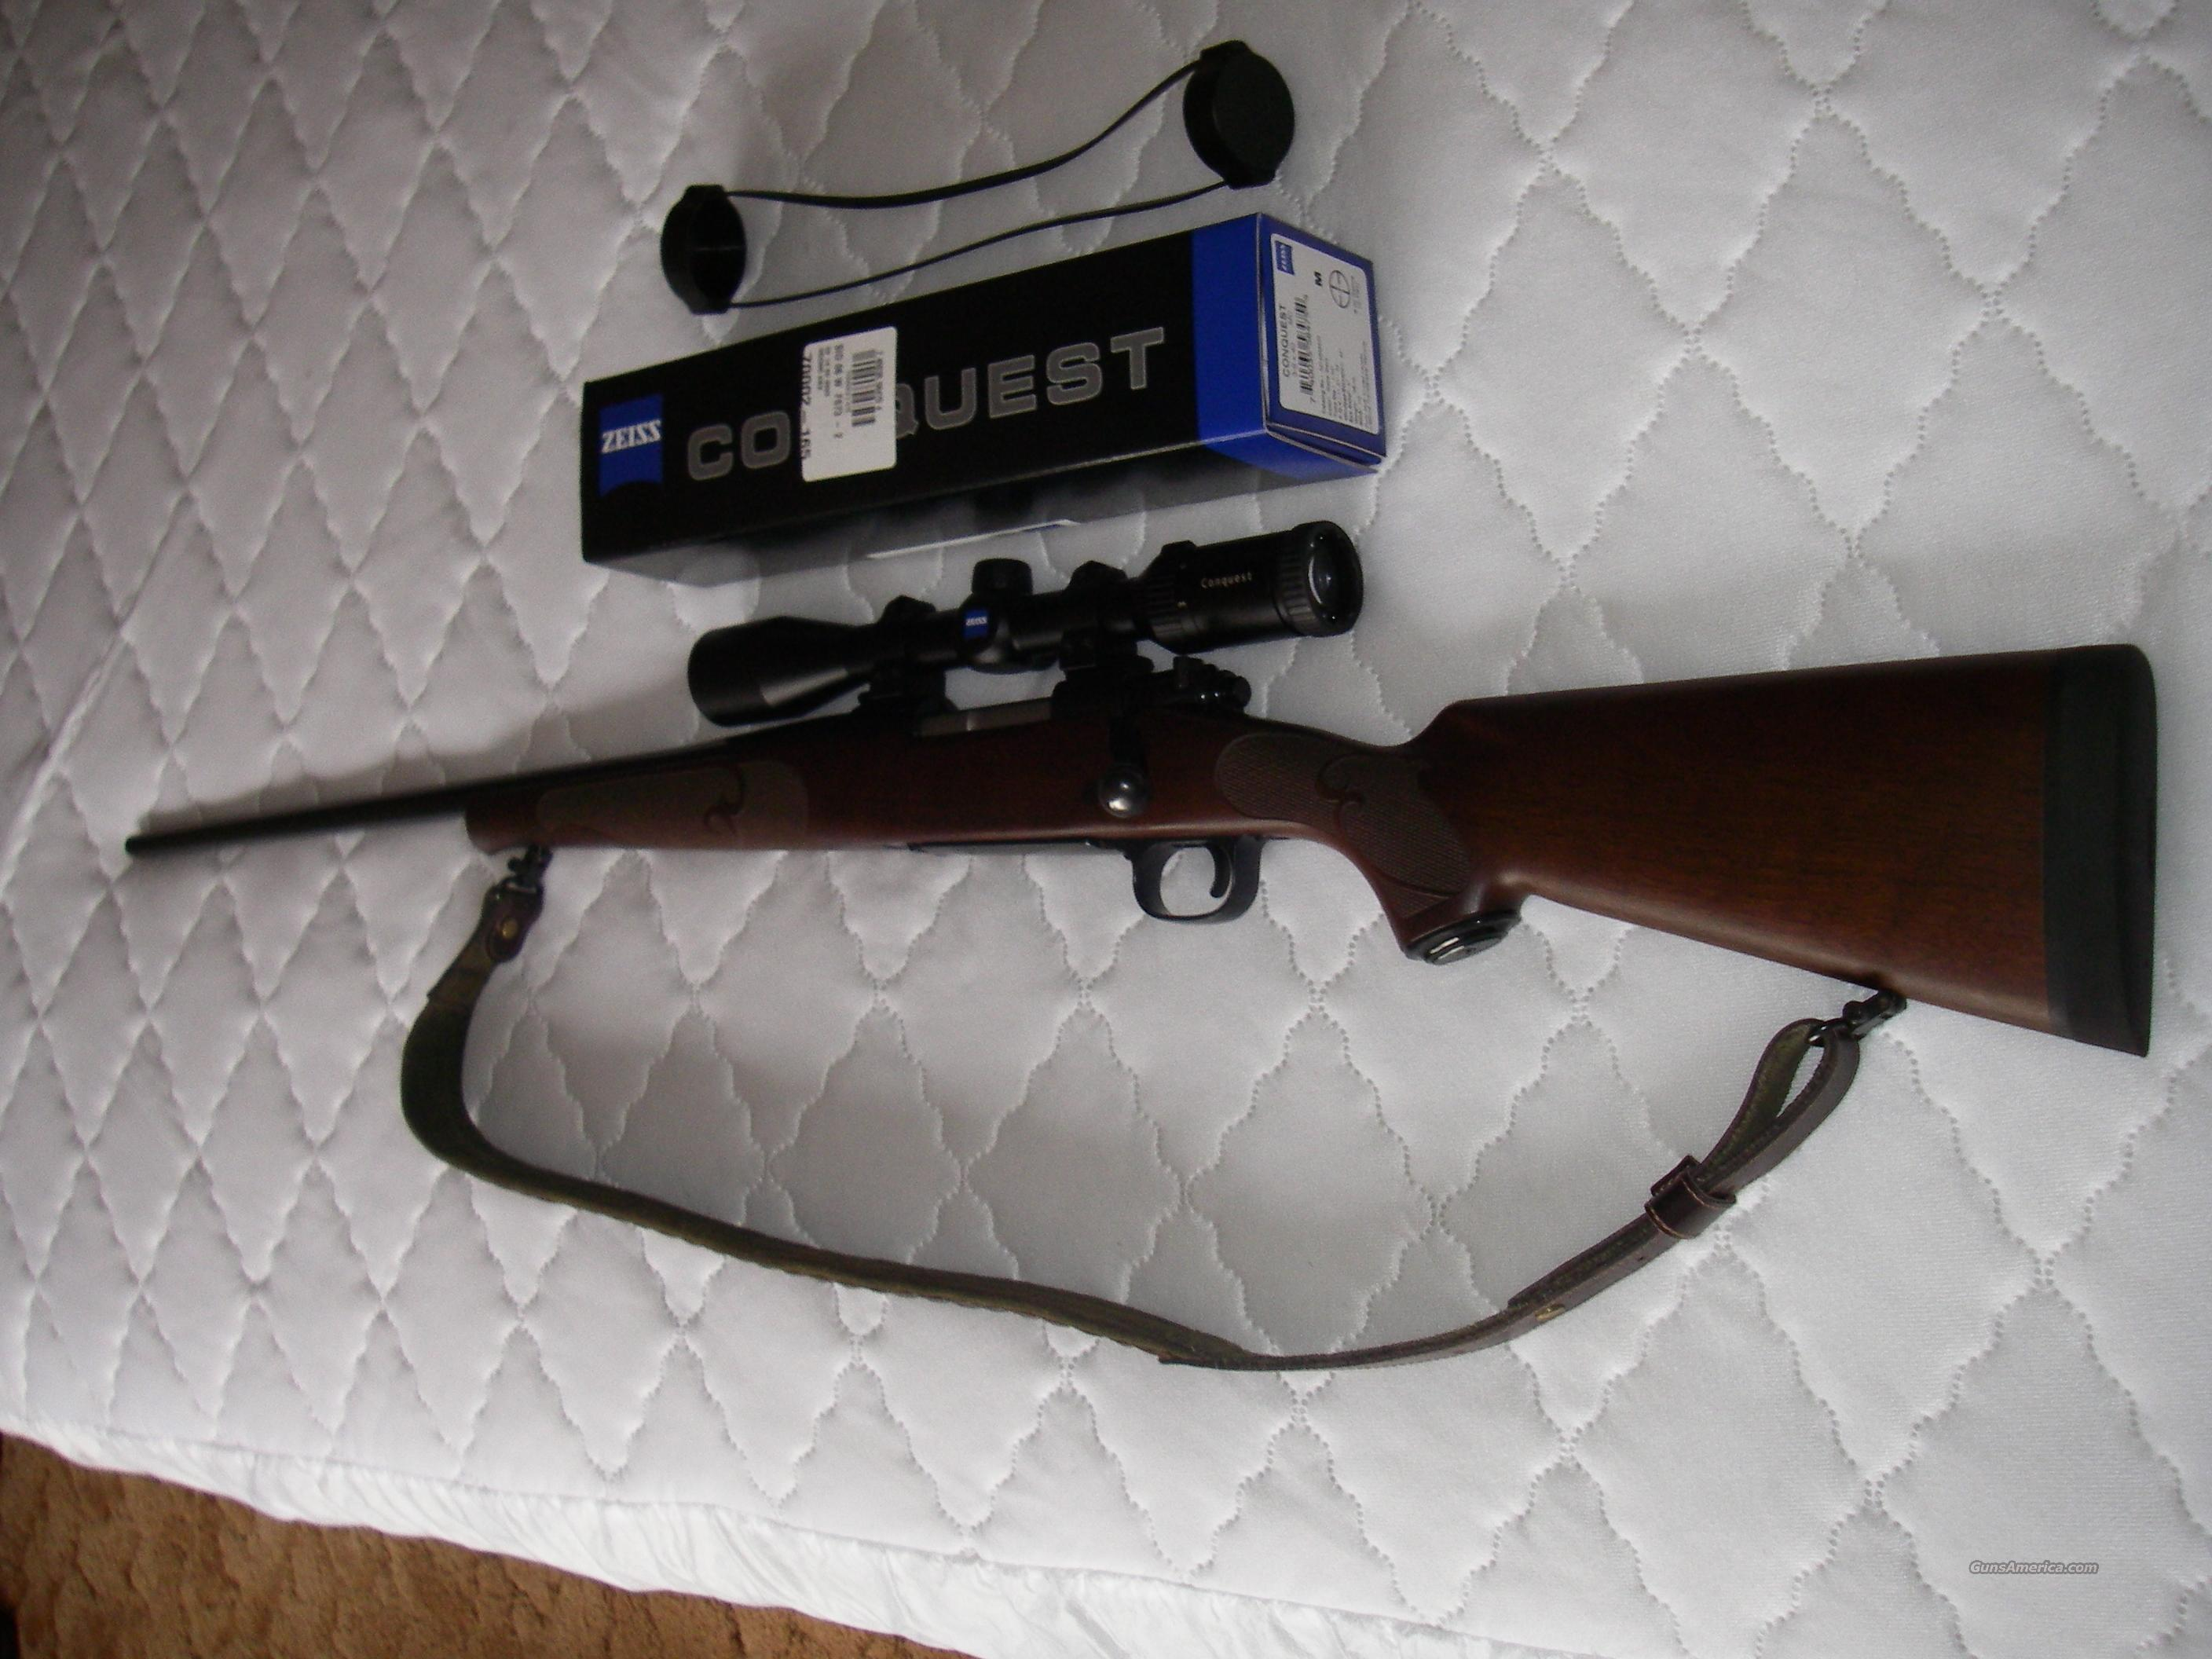 Winchester model 70 featherweight left hand rifle .270WSM, Zeiss rifle scope, warne rings and bases, custom strap and swivels LH  Guns > Rifles > Winchester Rifles - Modern Bolt/Auto/Single > Model 70 > Post-64